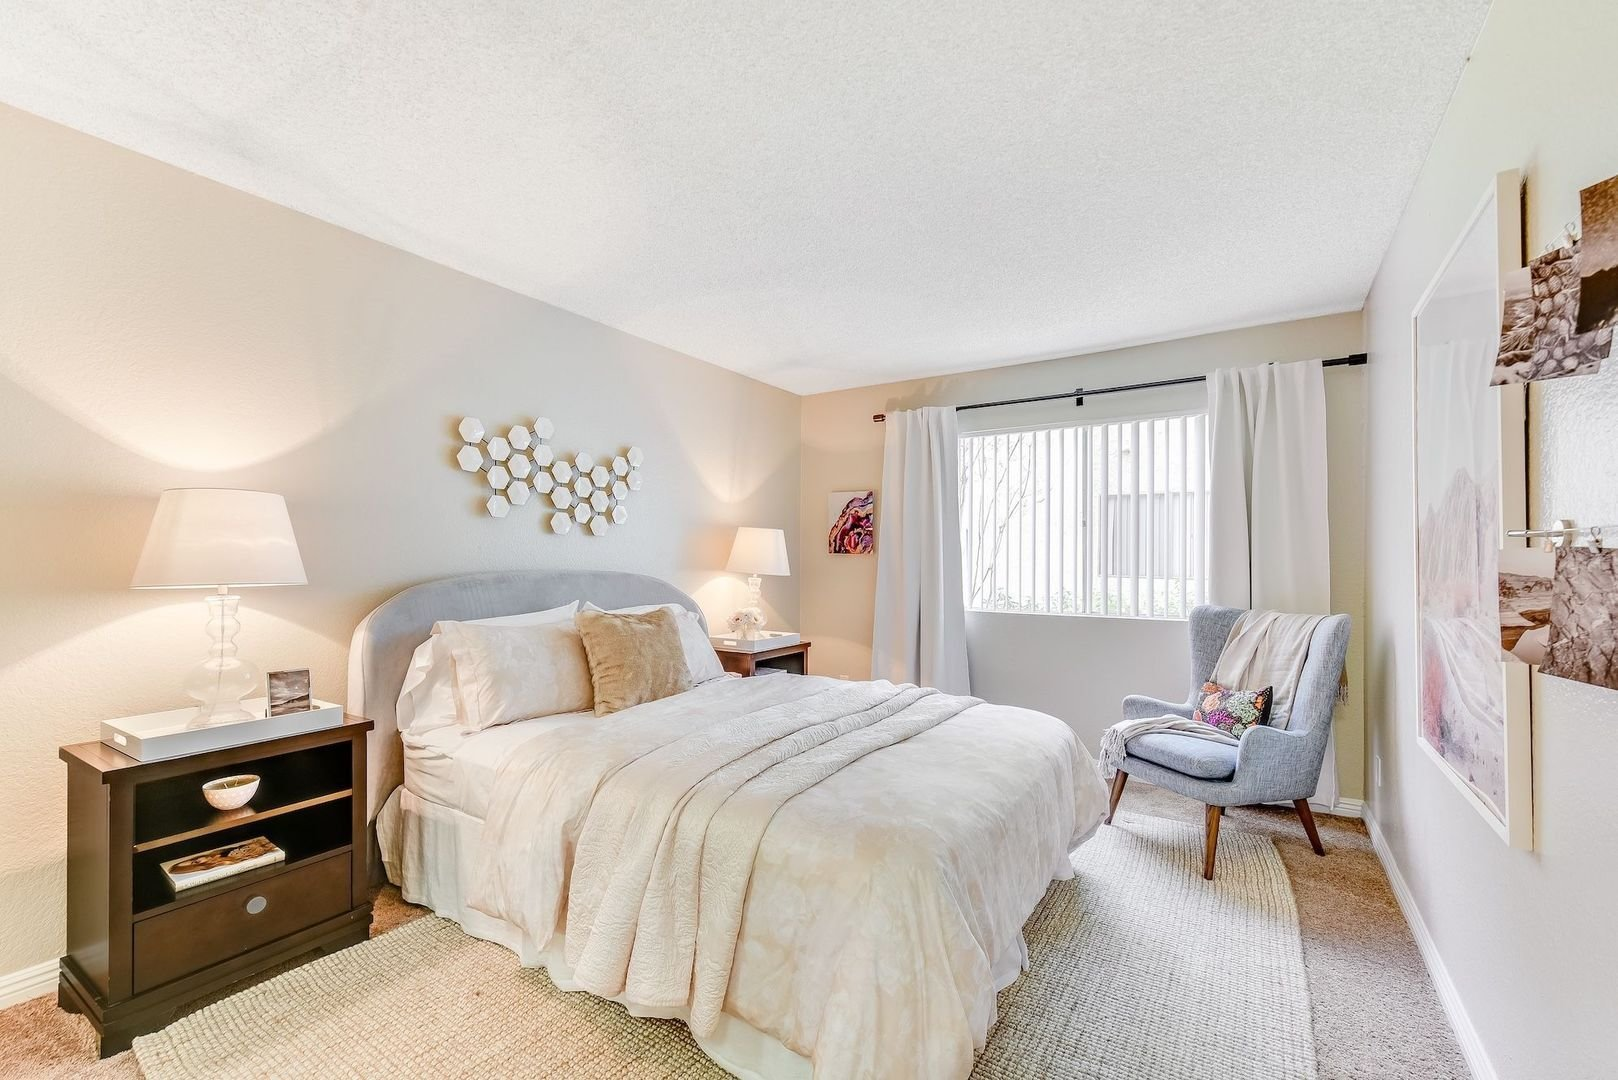 Best West Covina Apartments For Rent Torrey Pines West Covina Ca With Pictures